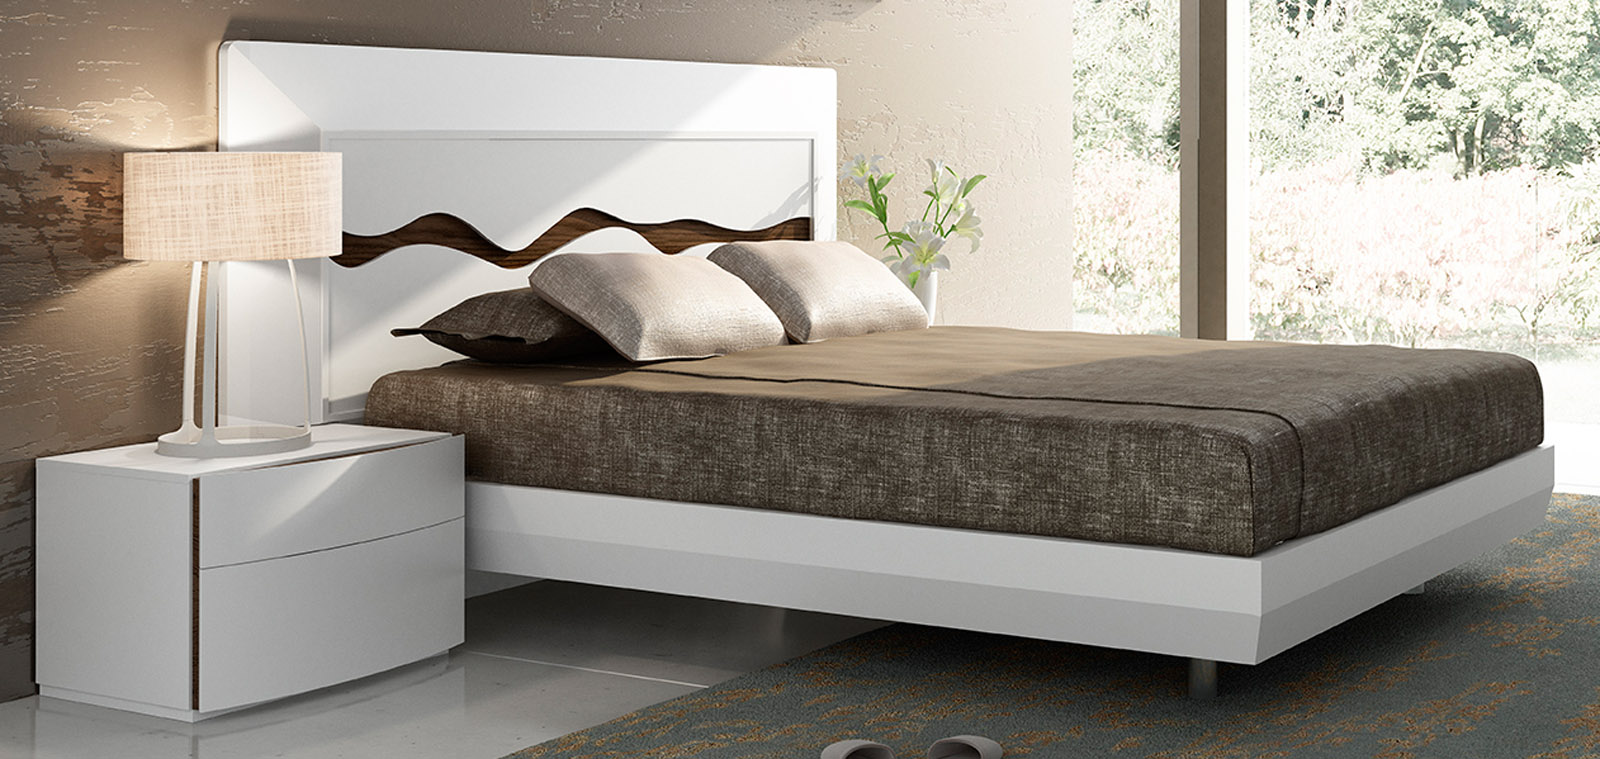 Lacquered Extravagant Quality Modern Platform Bed - Click Image to Close